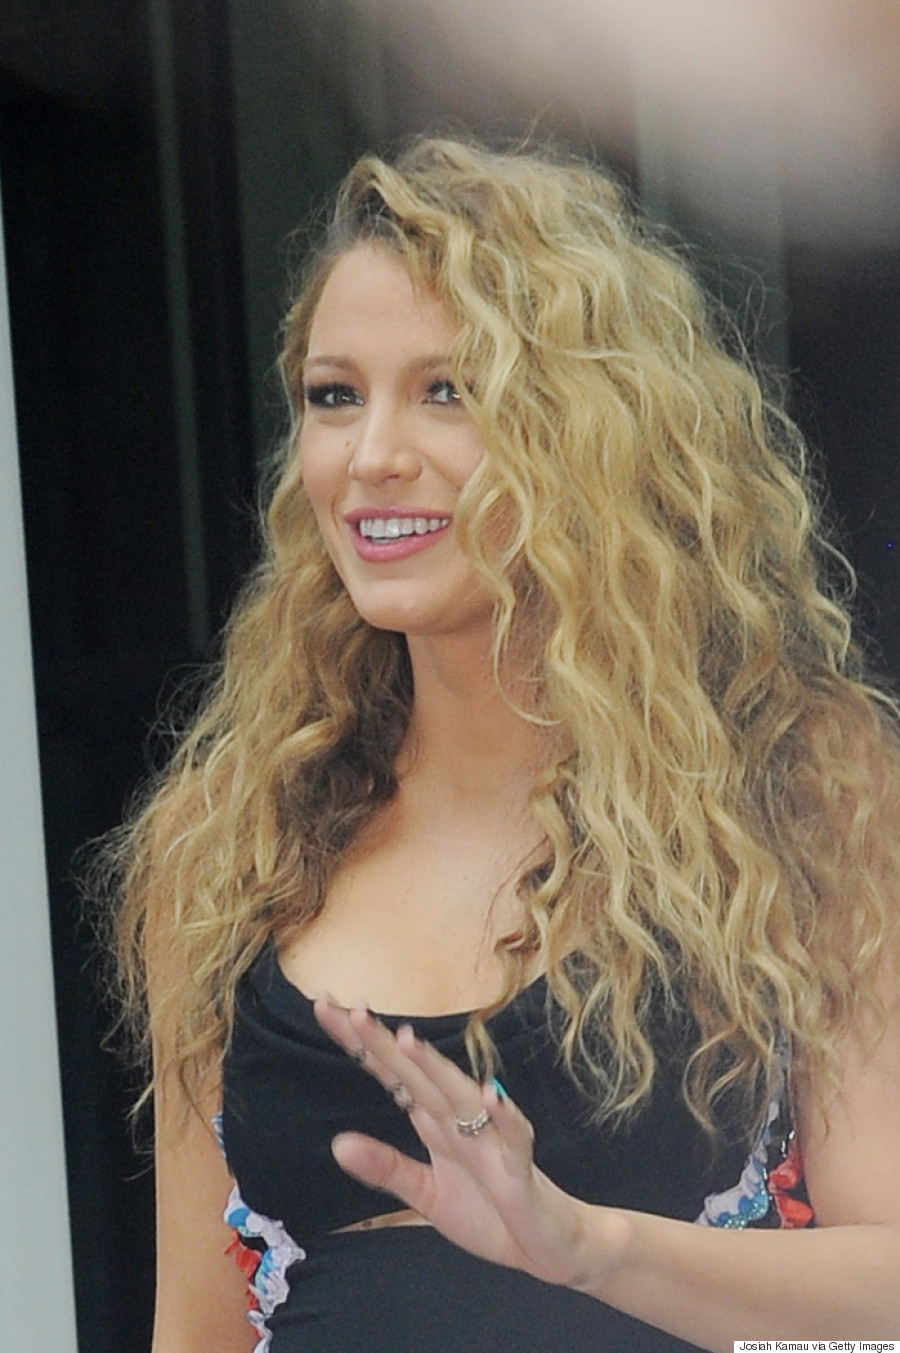 Blake Lively S Big Curls Are What 80s Hair Dreams Are Made Of